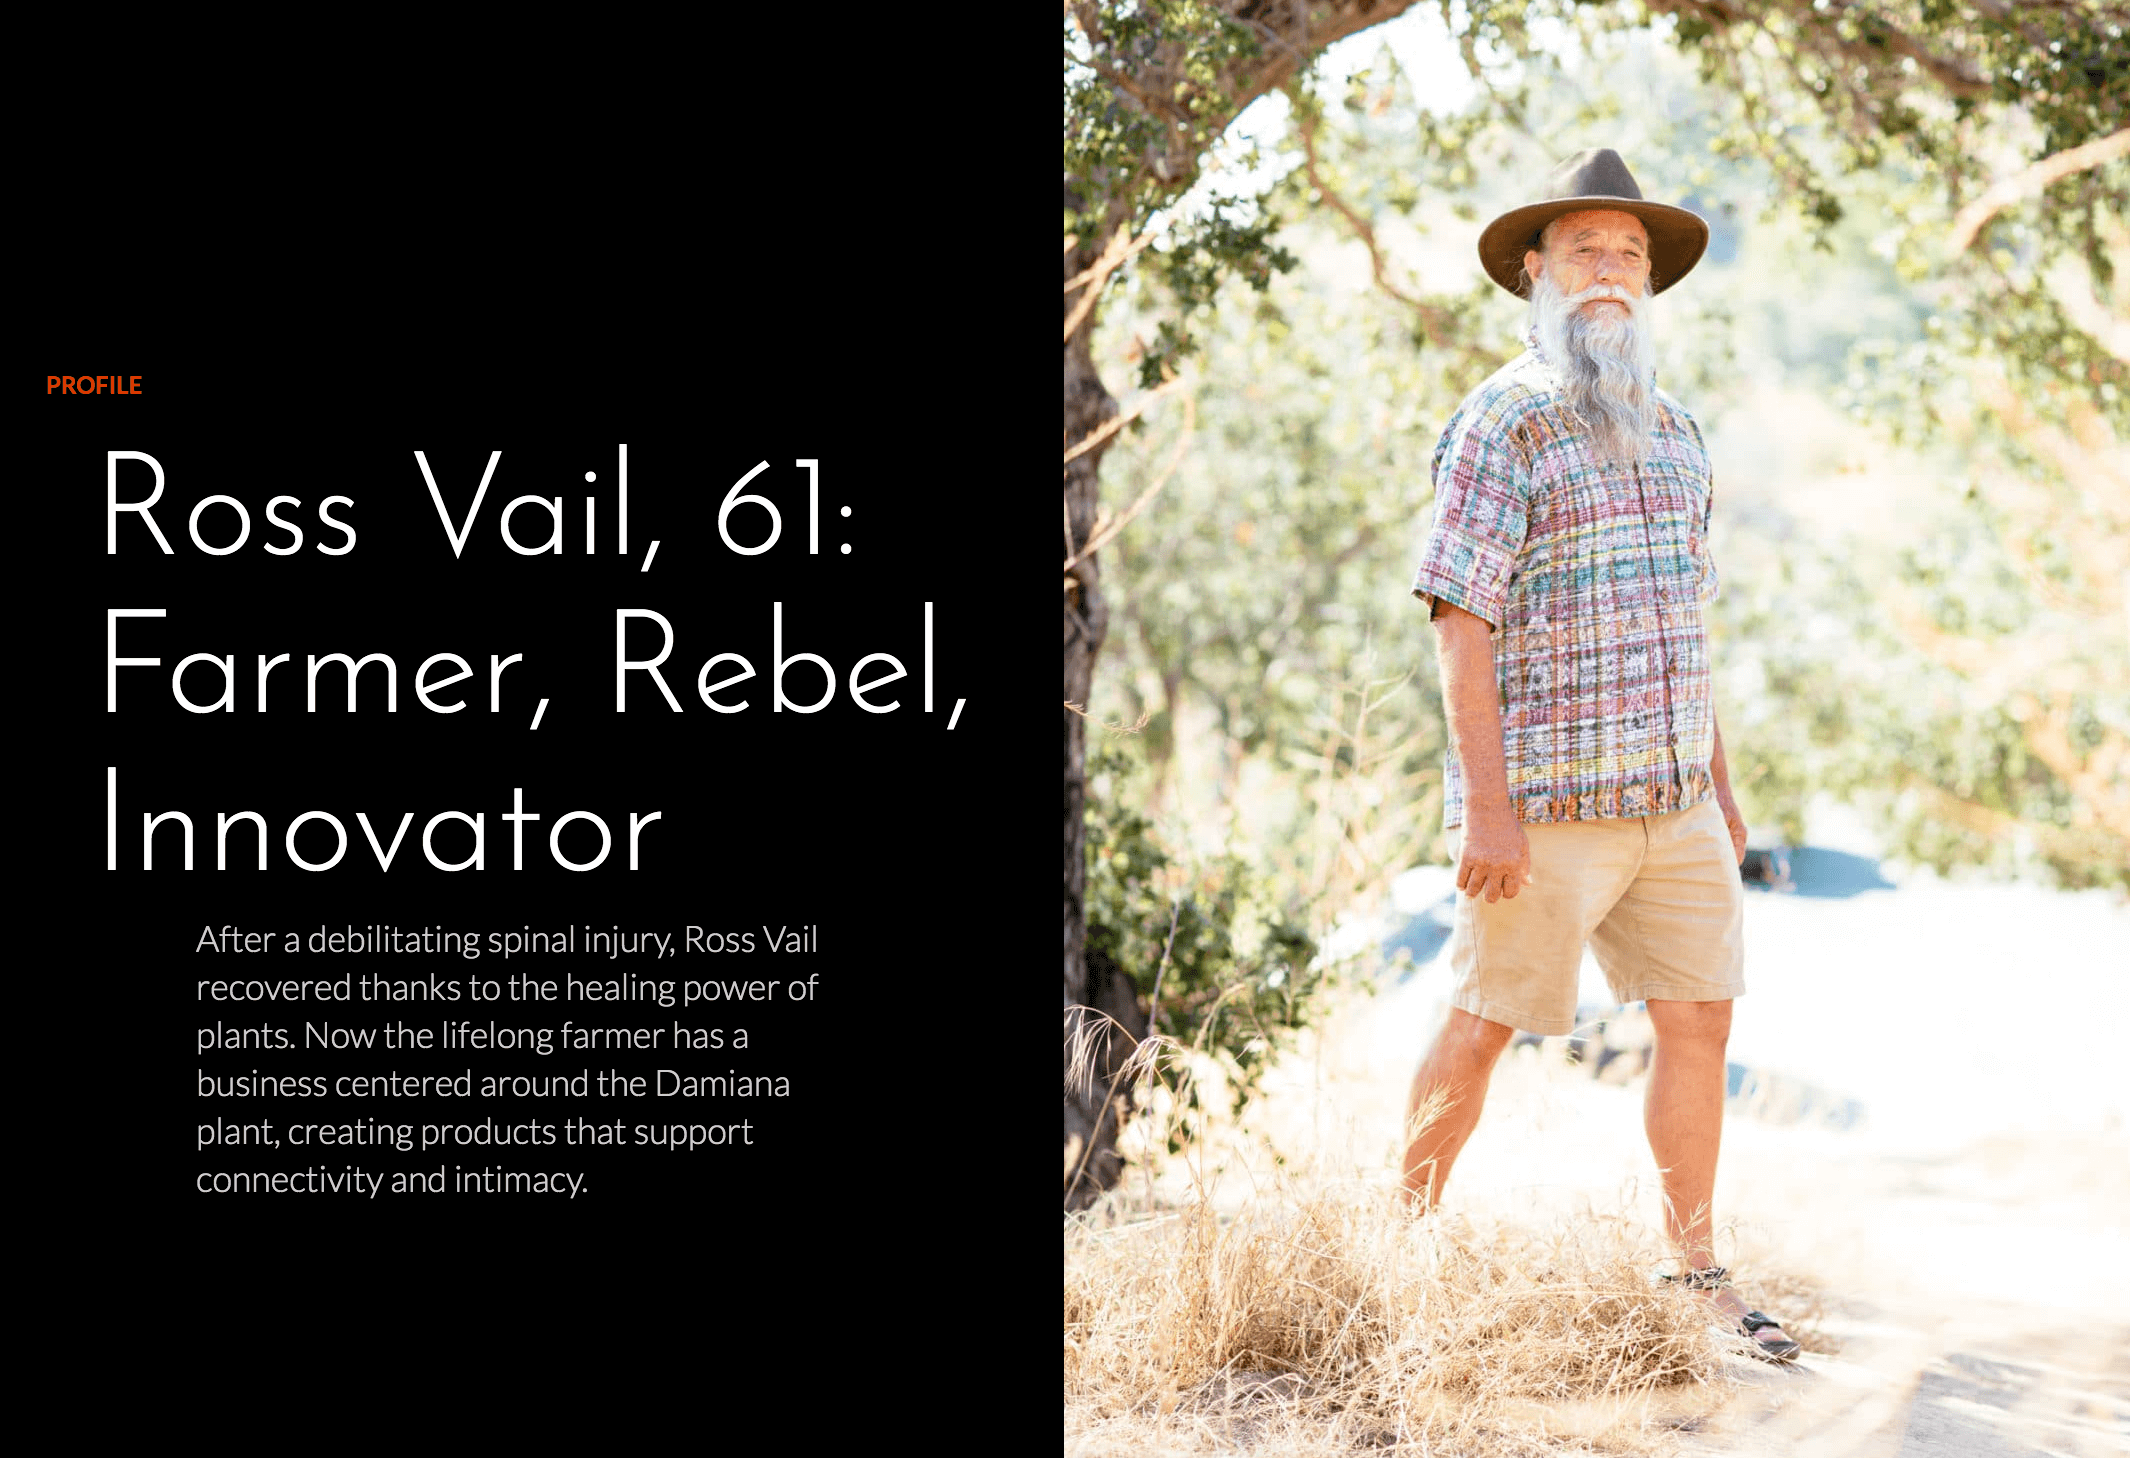 http://www.weareageist.com/profile/ross-vail-61-farmer-rebel-innovator/